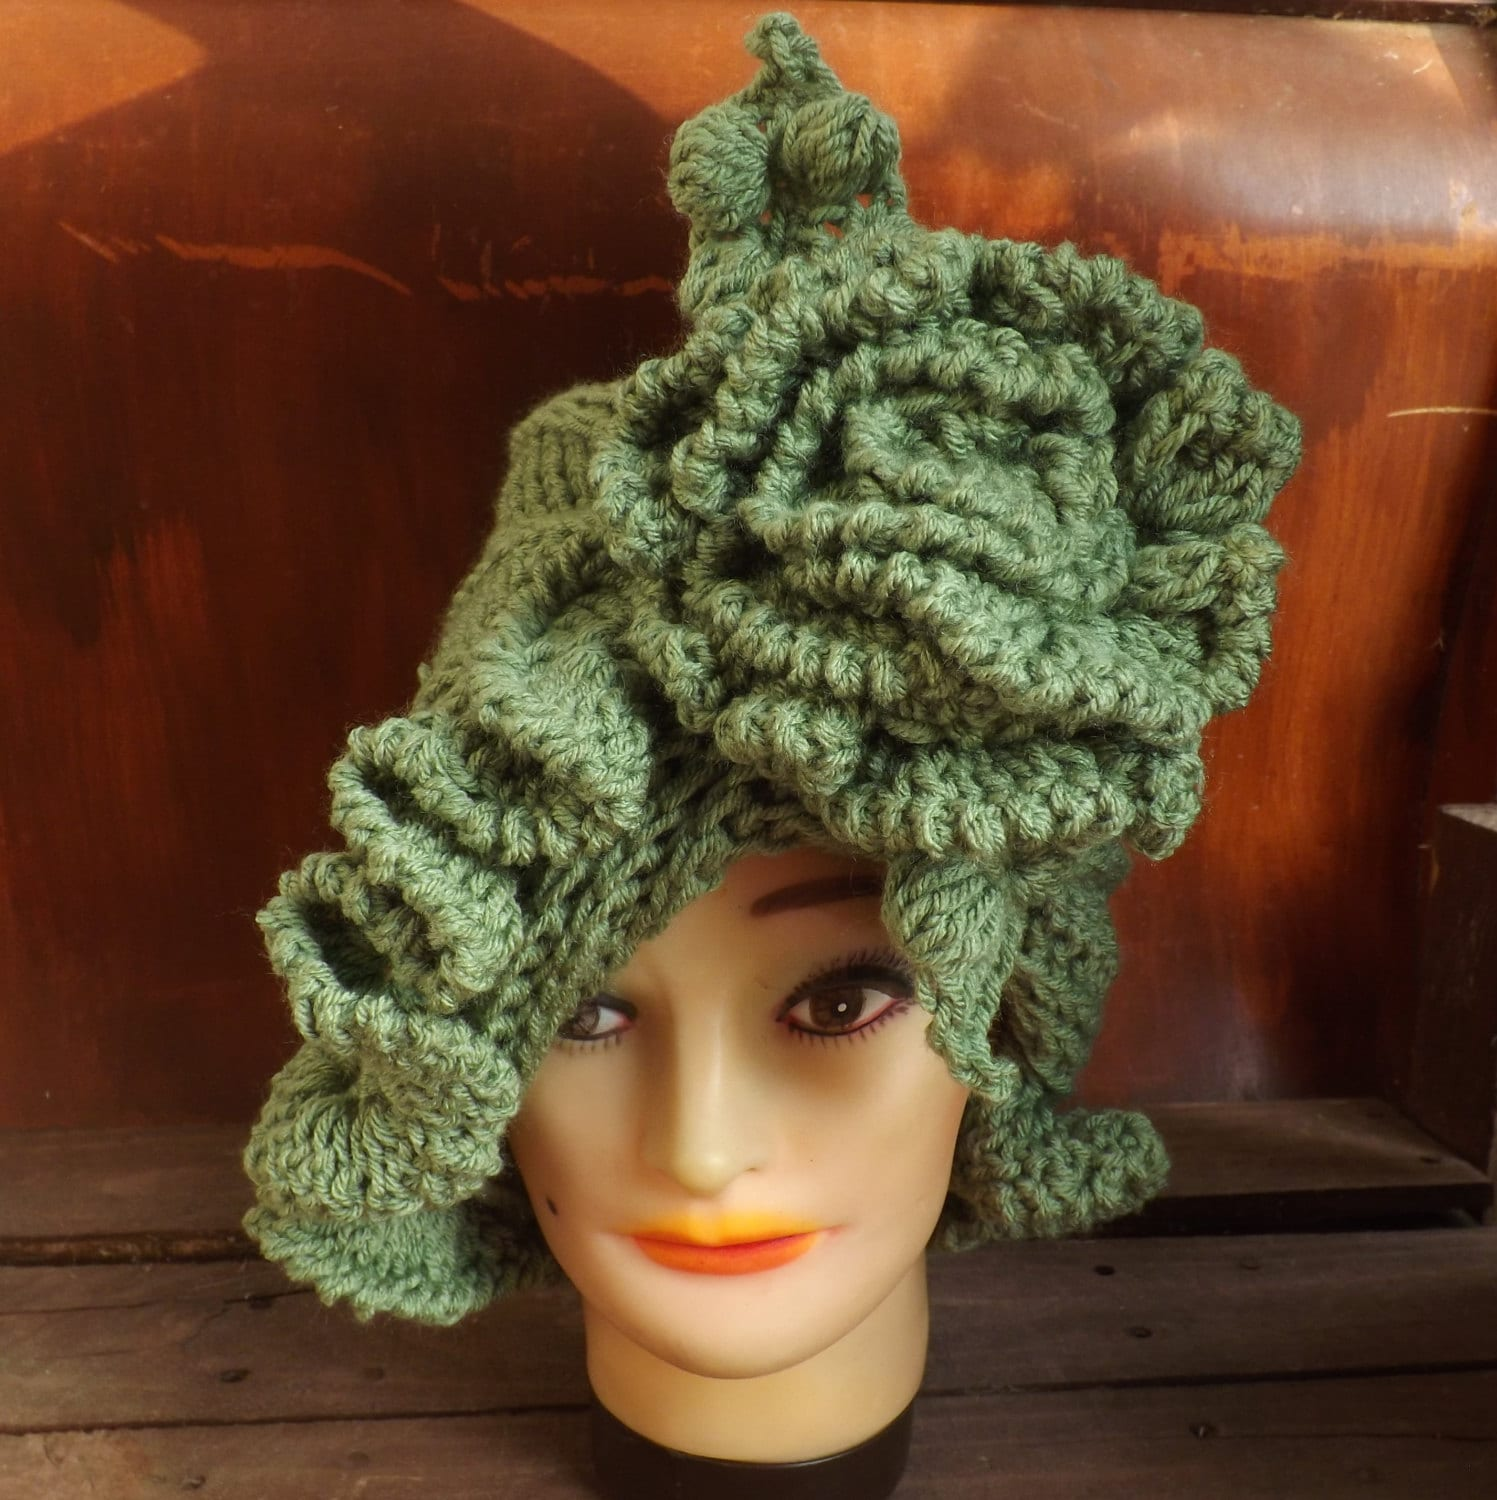 Crochet Patterns Etsy : CYNTHIA Ruffle Womens Crochet Hat Pattern by strawberrycouture